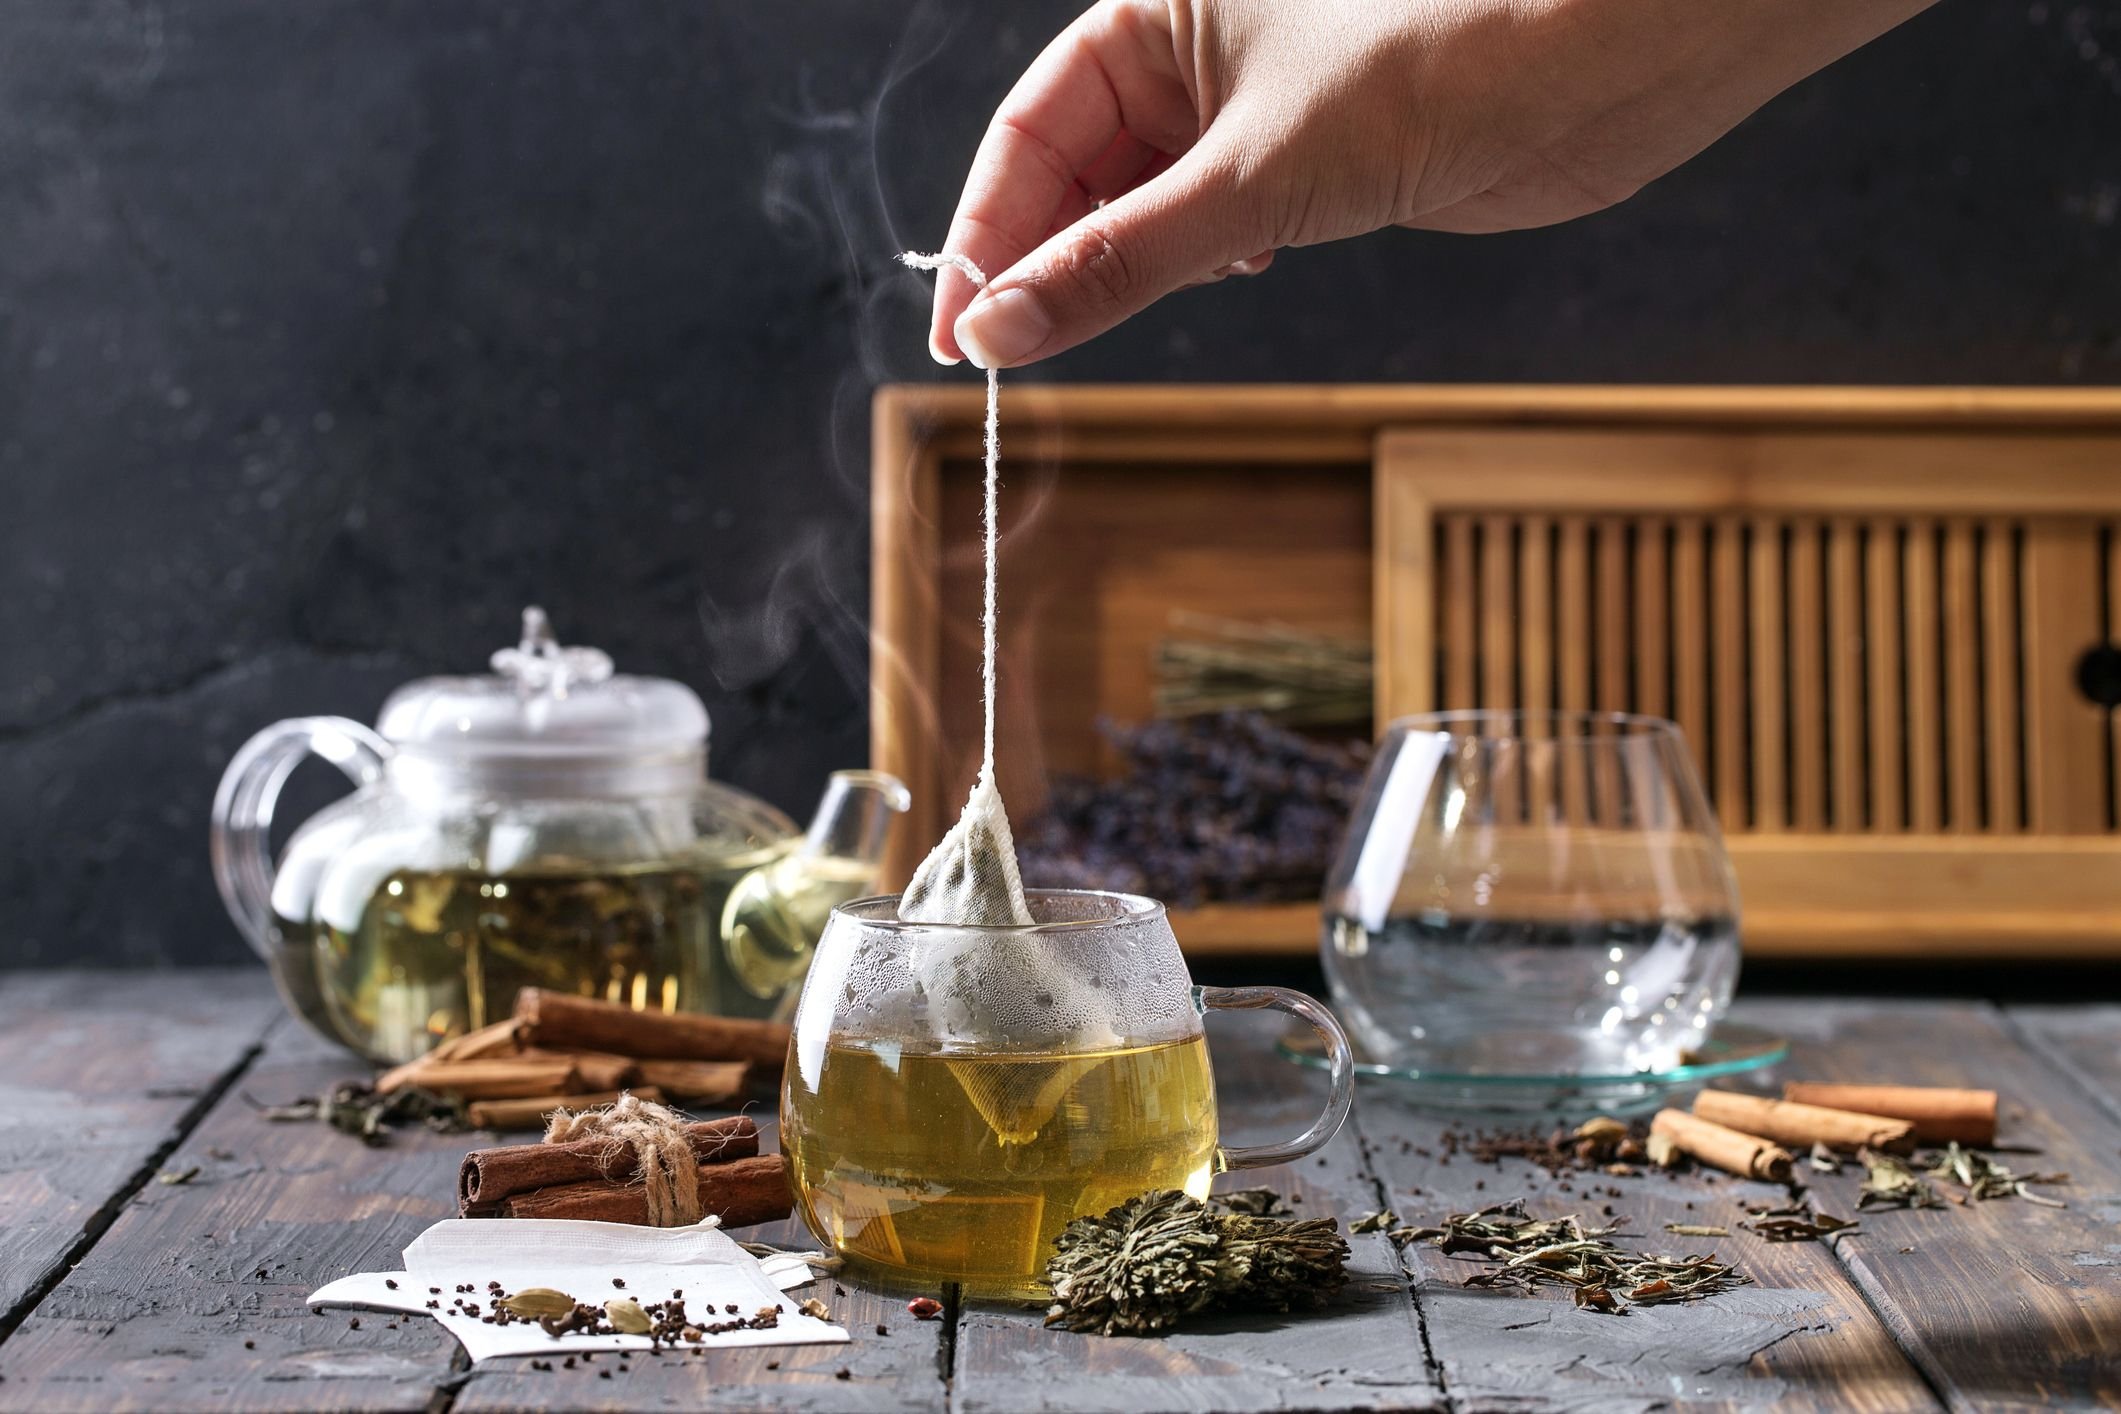 10 green tea myths and facts - is green tea healthy?